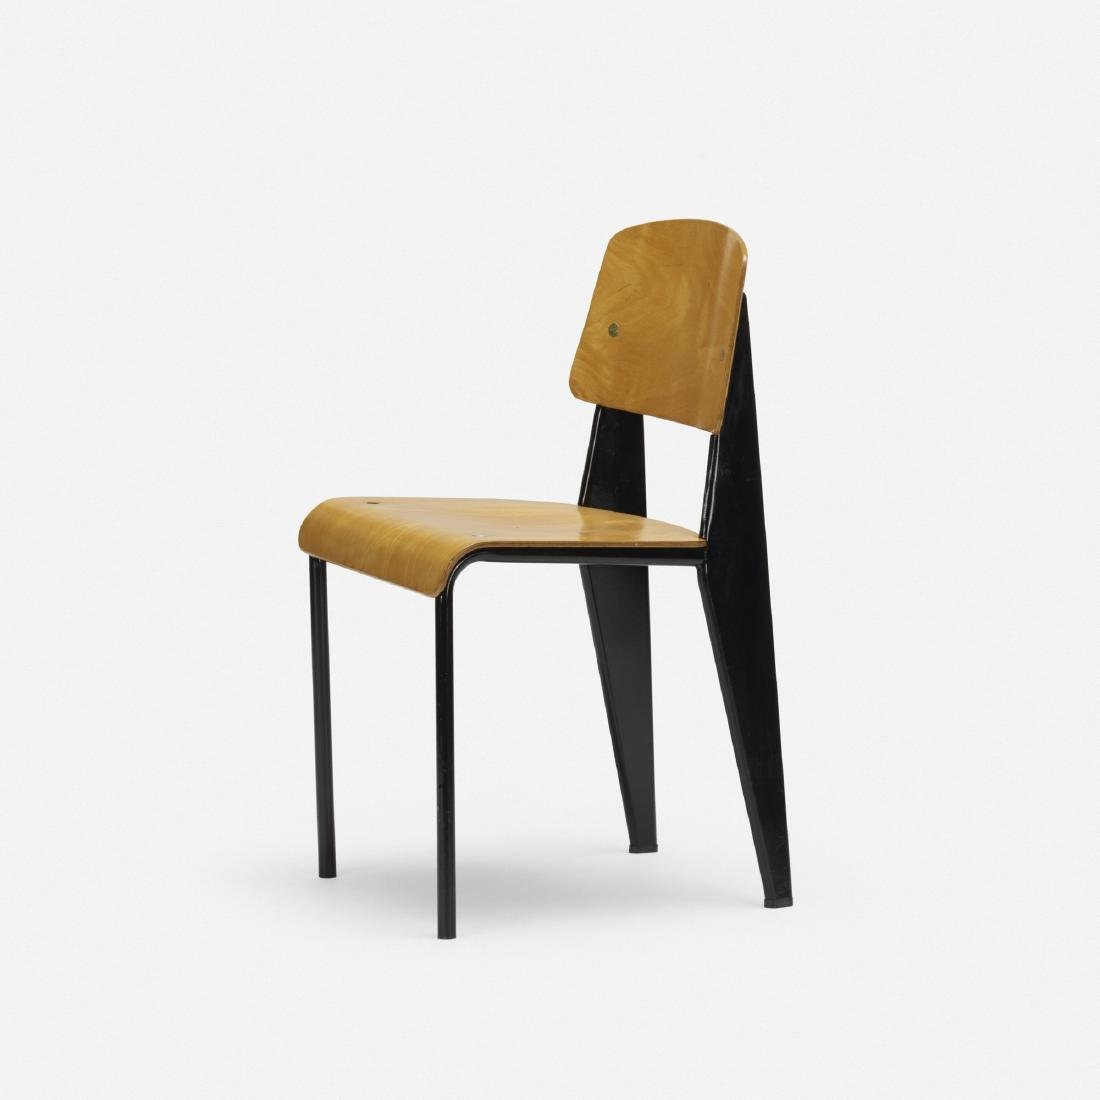 Jean Prouve, 'Semi-Metal' chair, no. 305 - 2